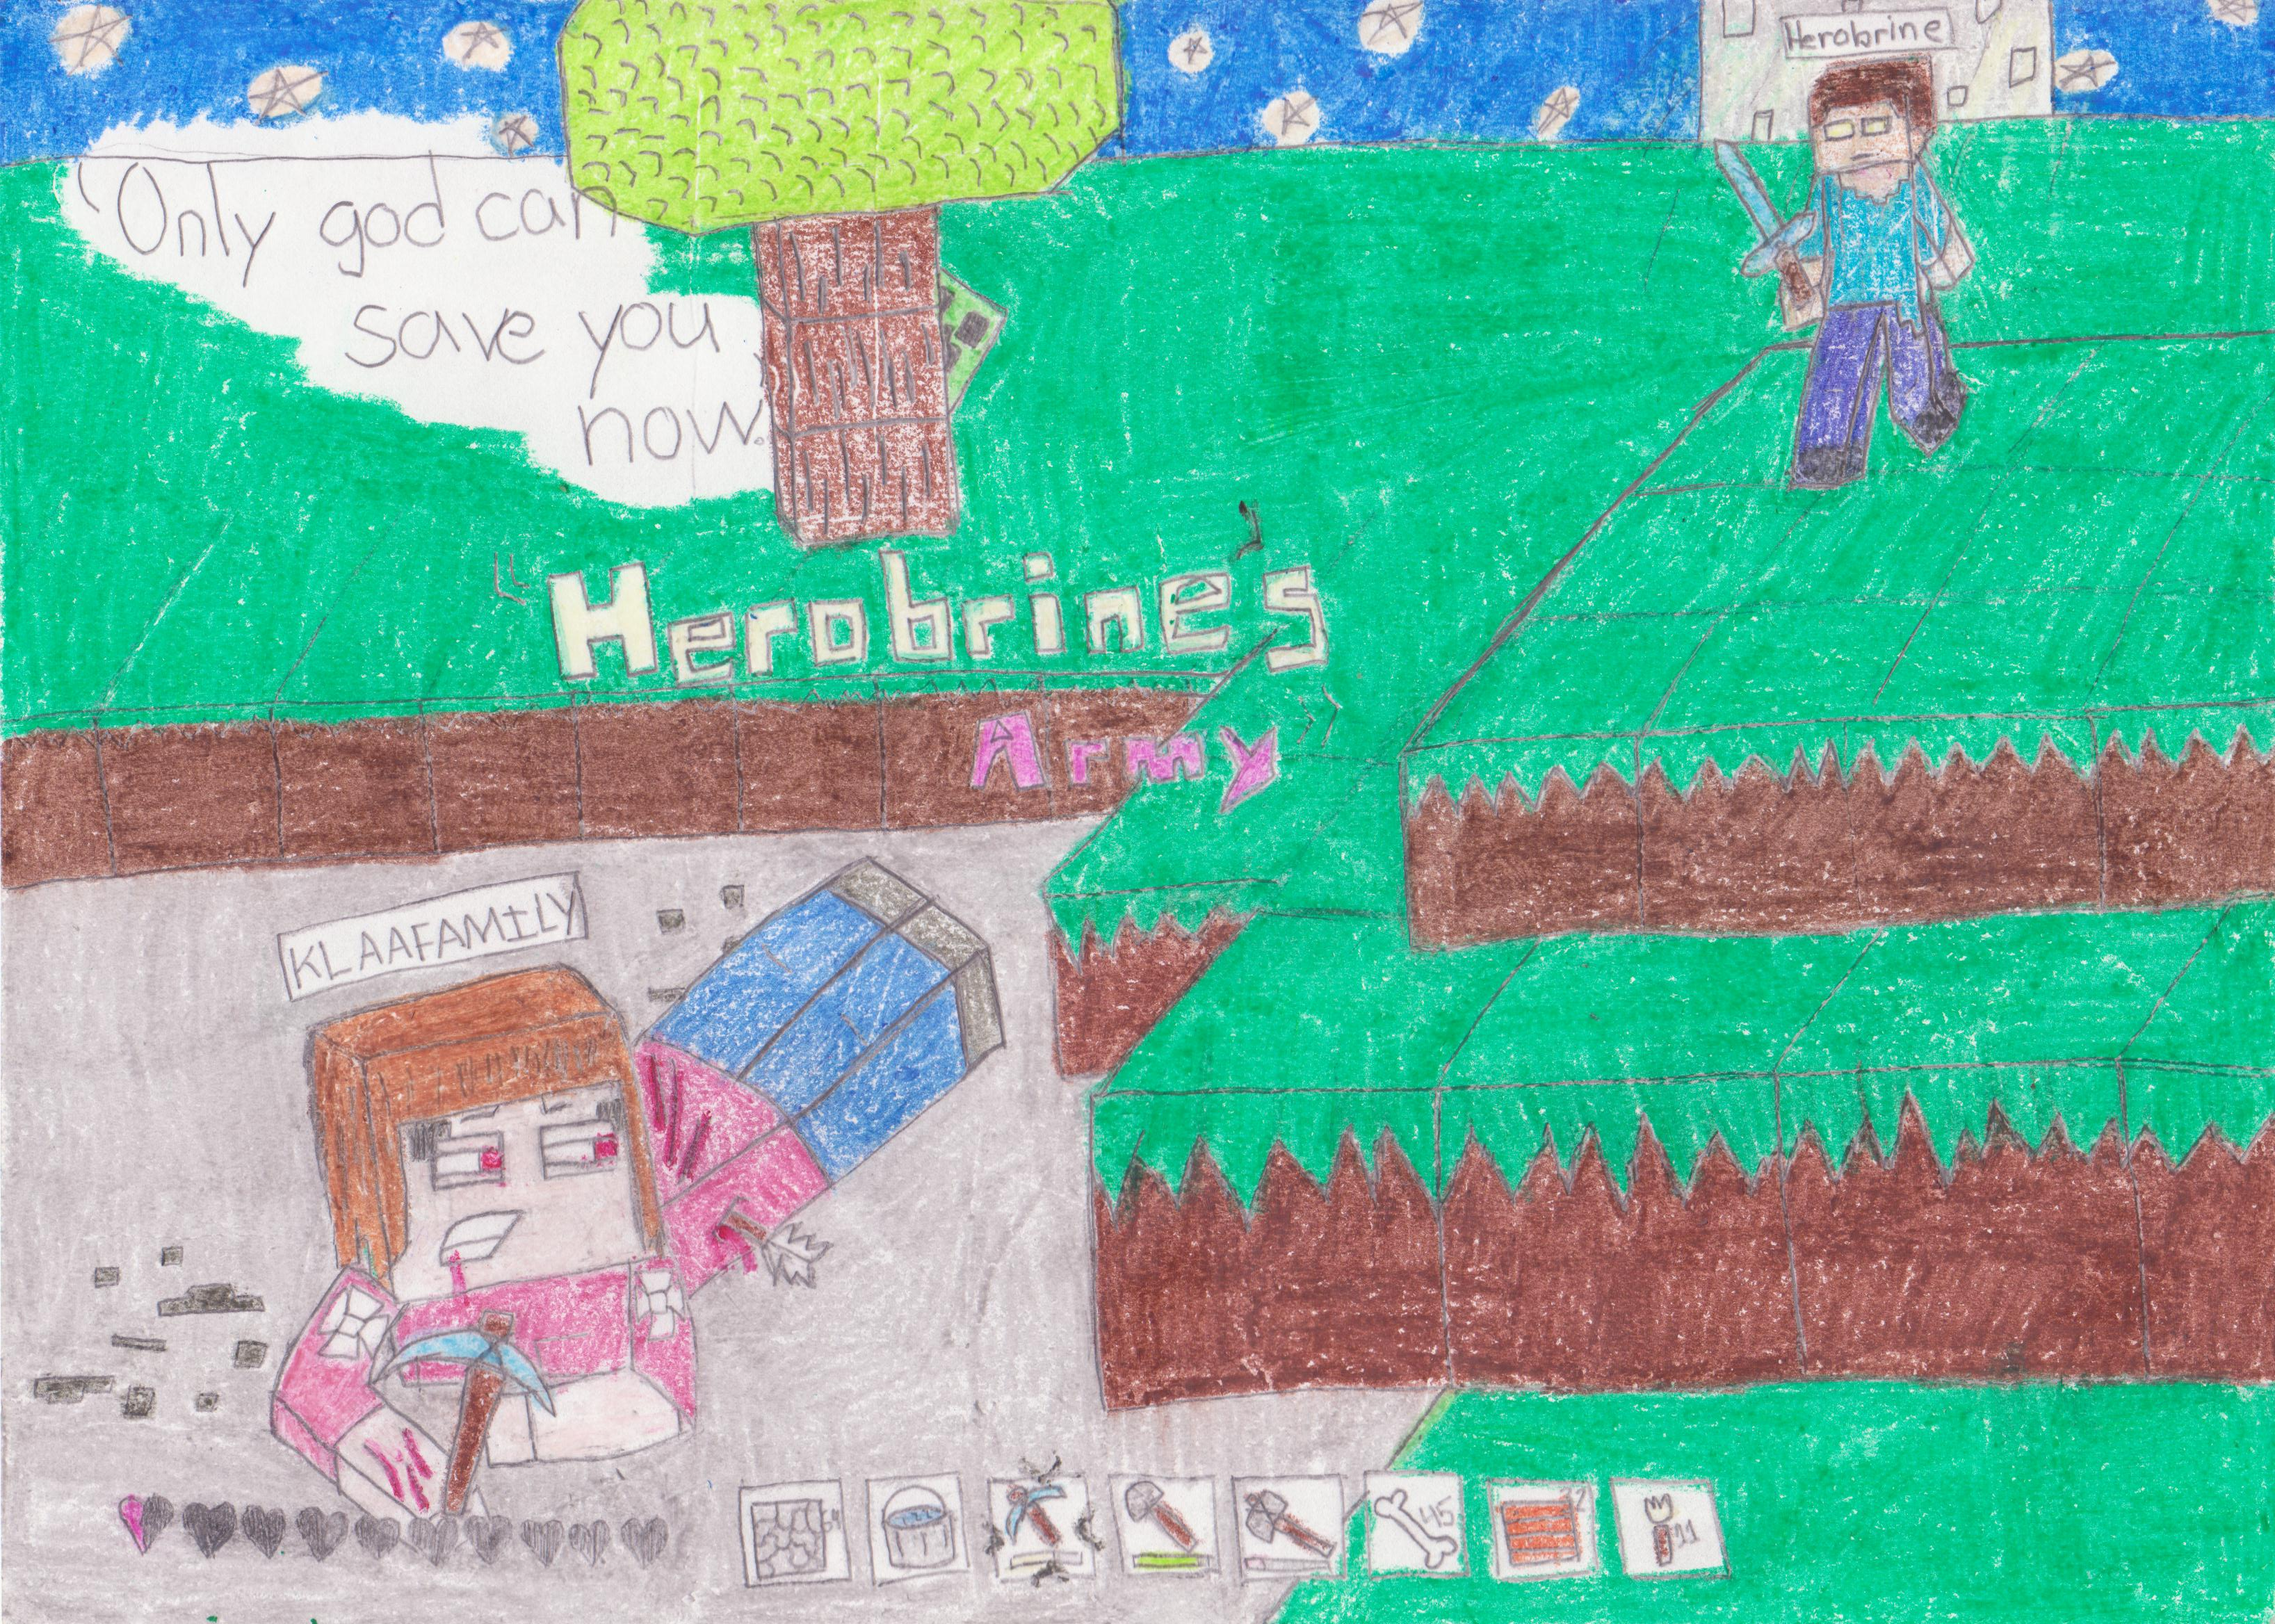 Herobrine\'s Army\' cover COLOR by robindri on DeviantArt